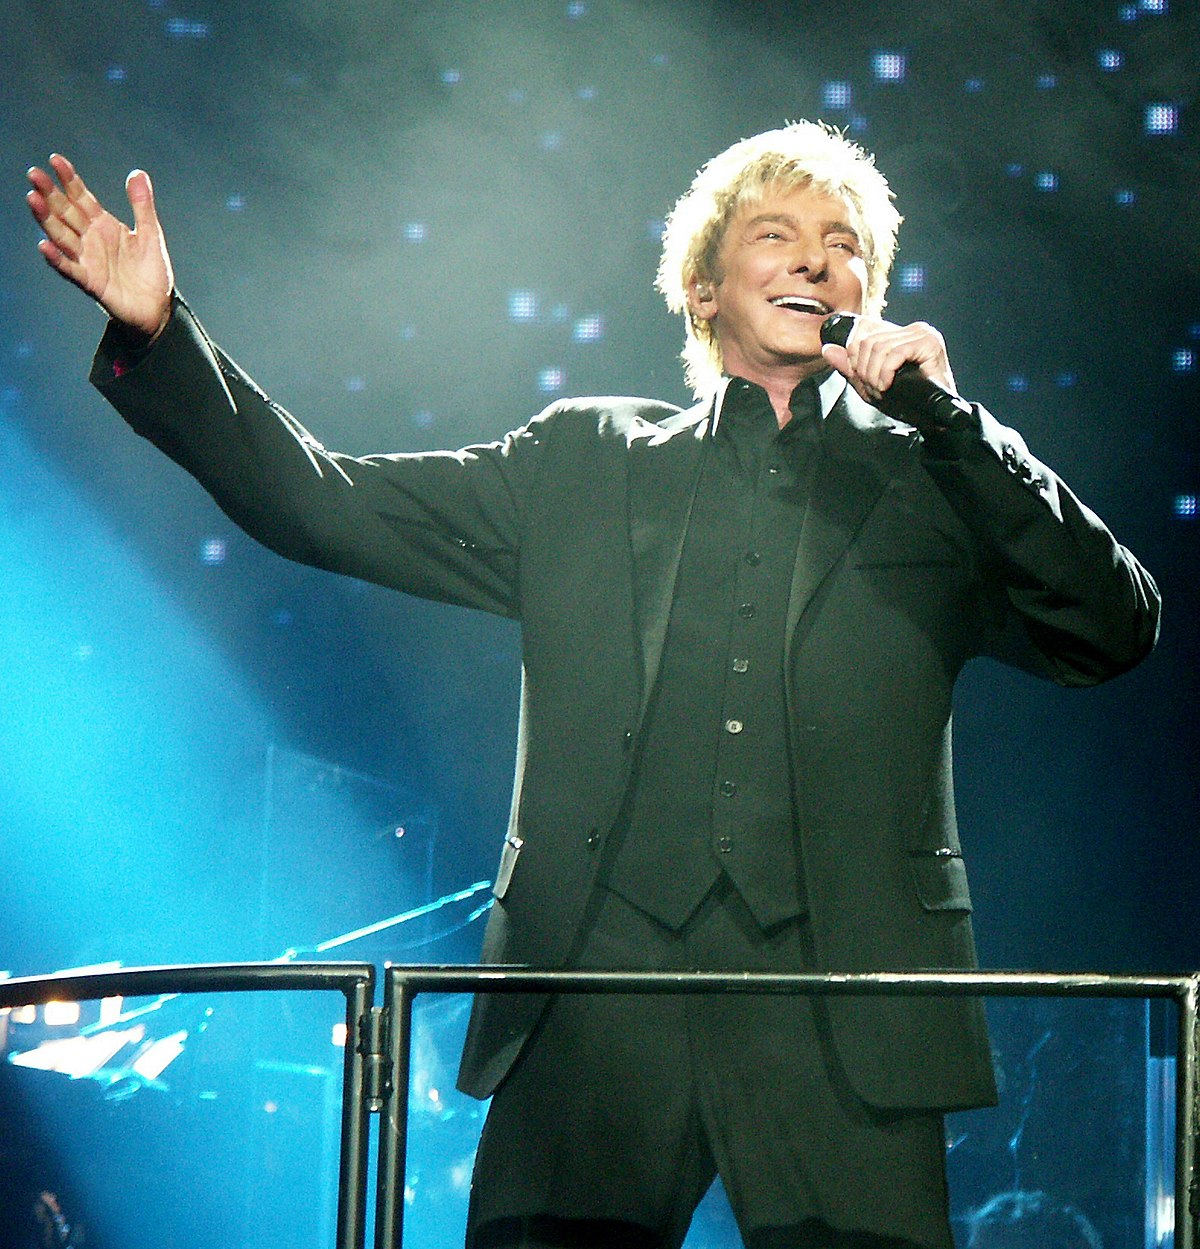 Barry Manilow - Wikipedia